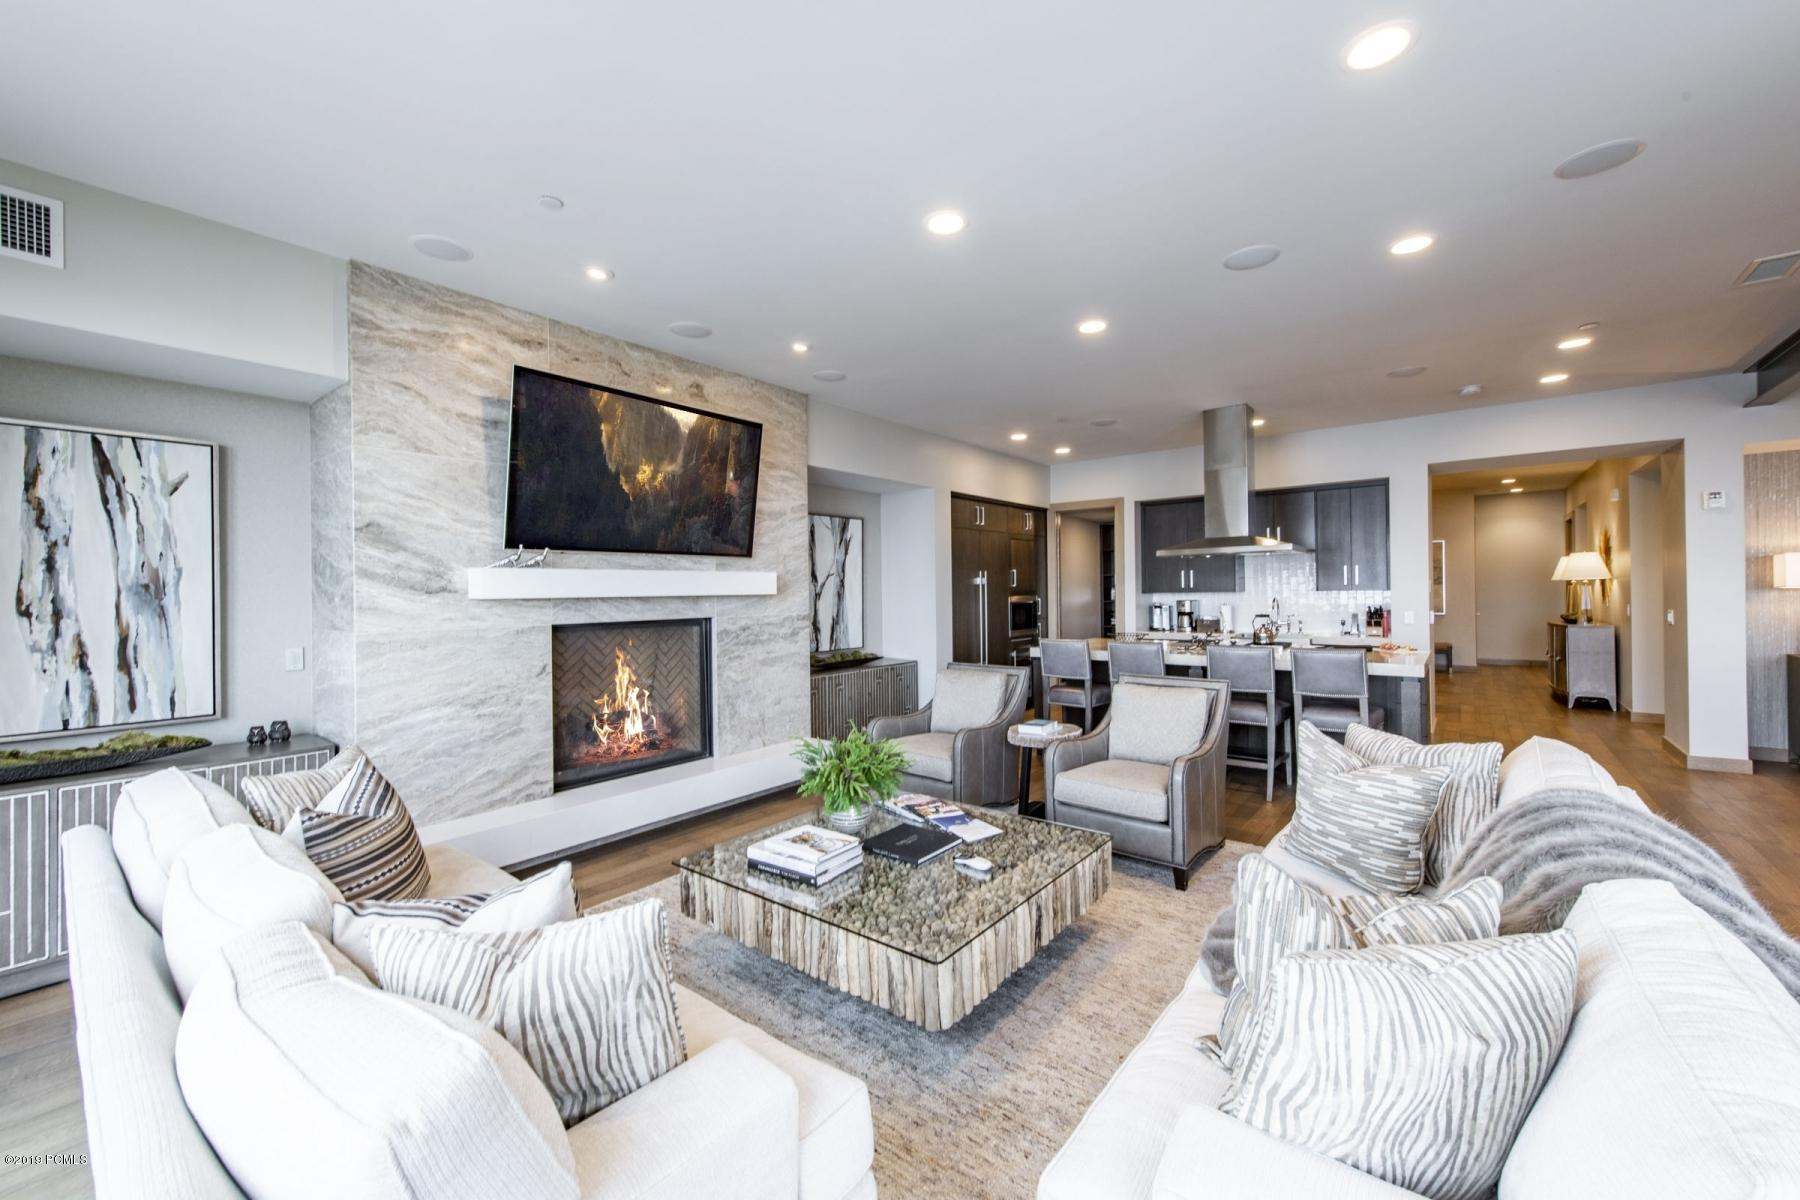 7101 Stein Circle, Park City, Utah 84060, 5 Bedrooms Bedrooms, ,7 BathroomsBathrooms,Condominium,For Sale,Stein,20190109112430415765000000